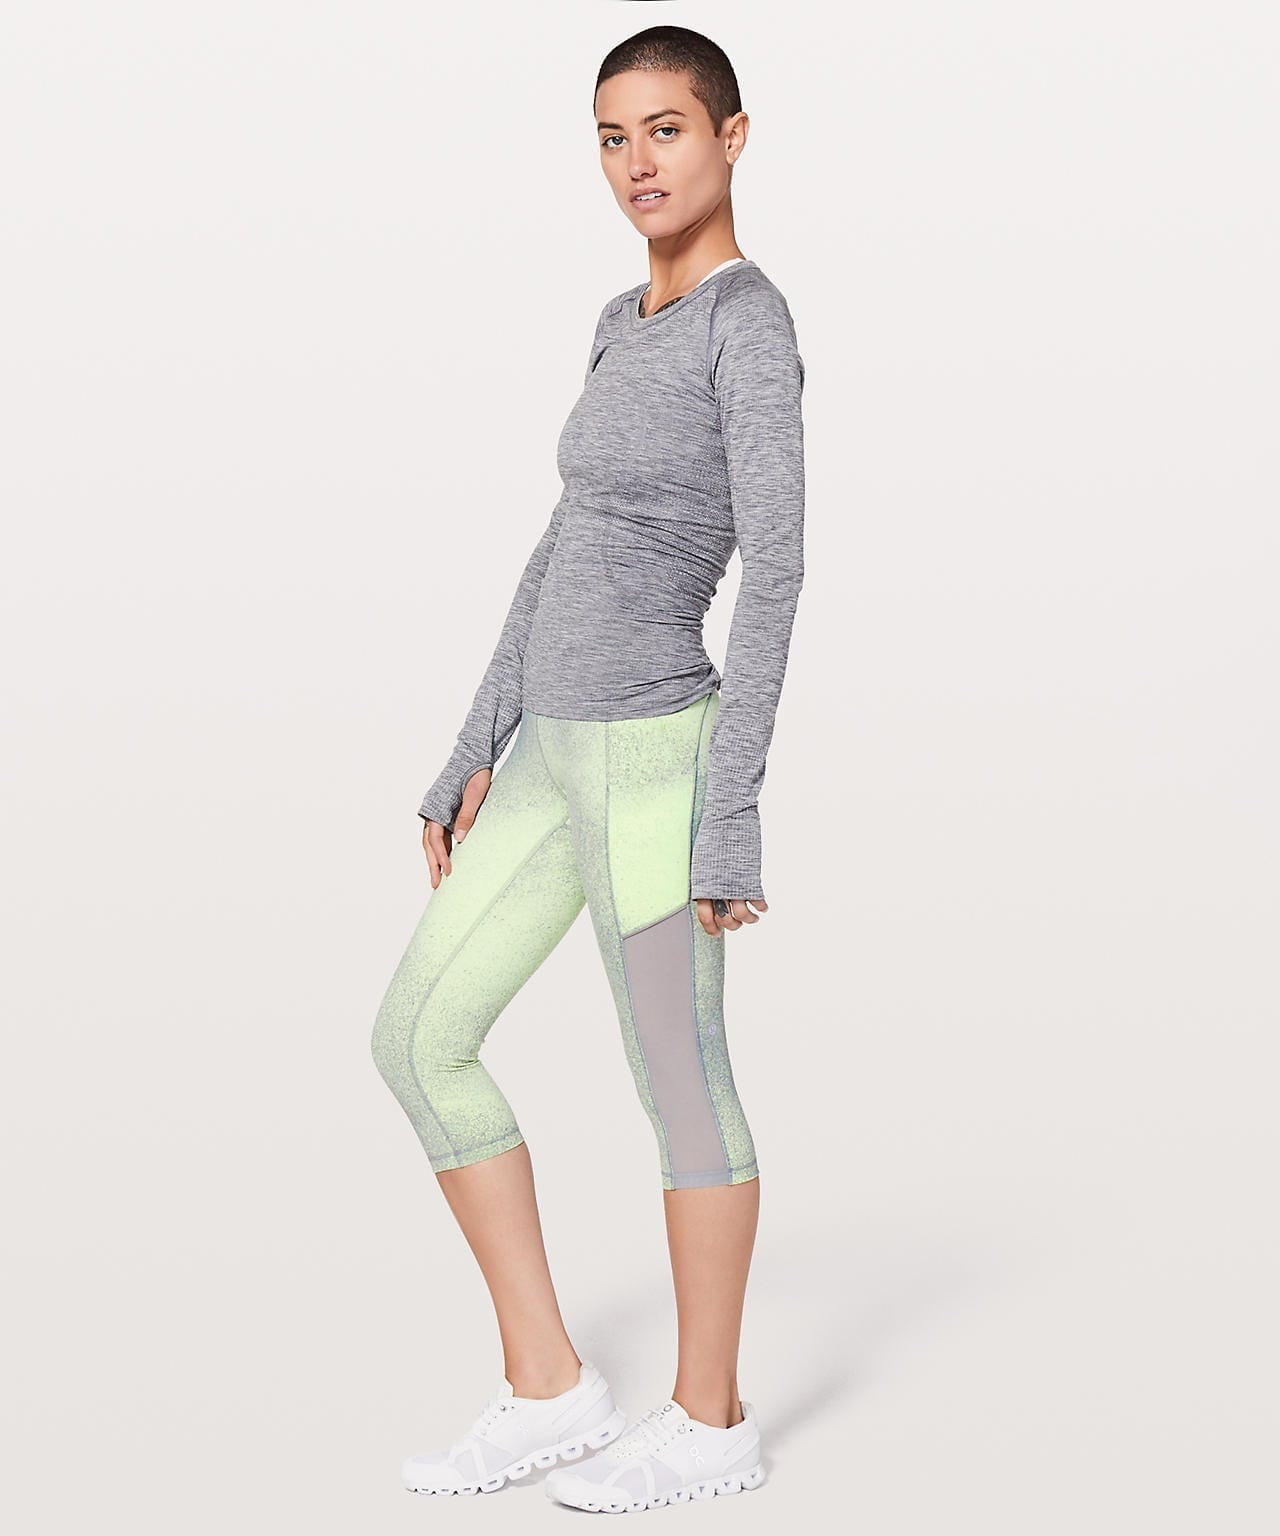 Speed Up Crop, Check Out What's New At Lululemon